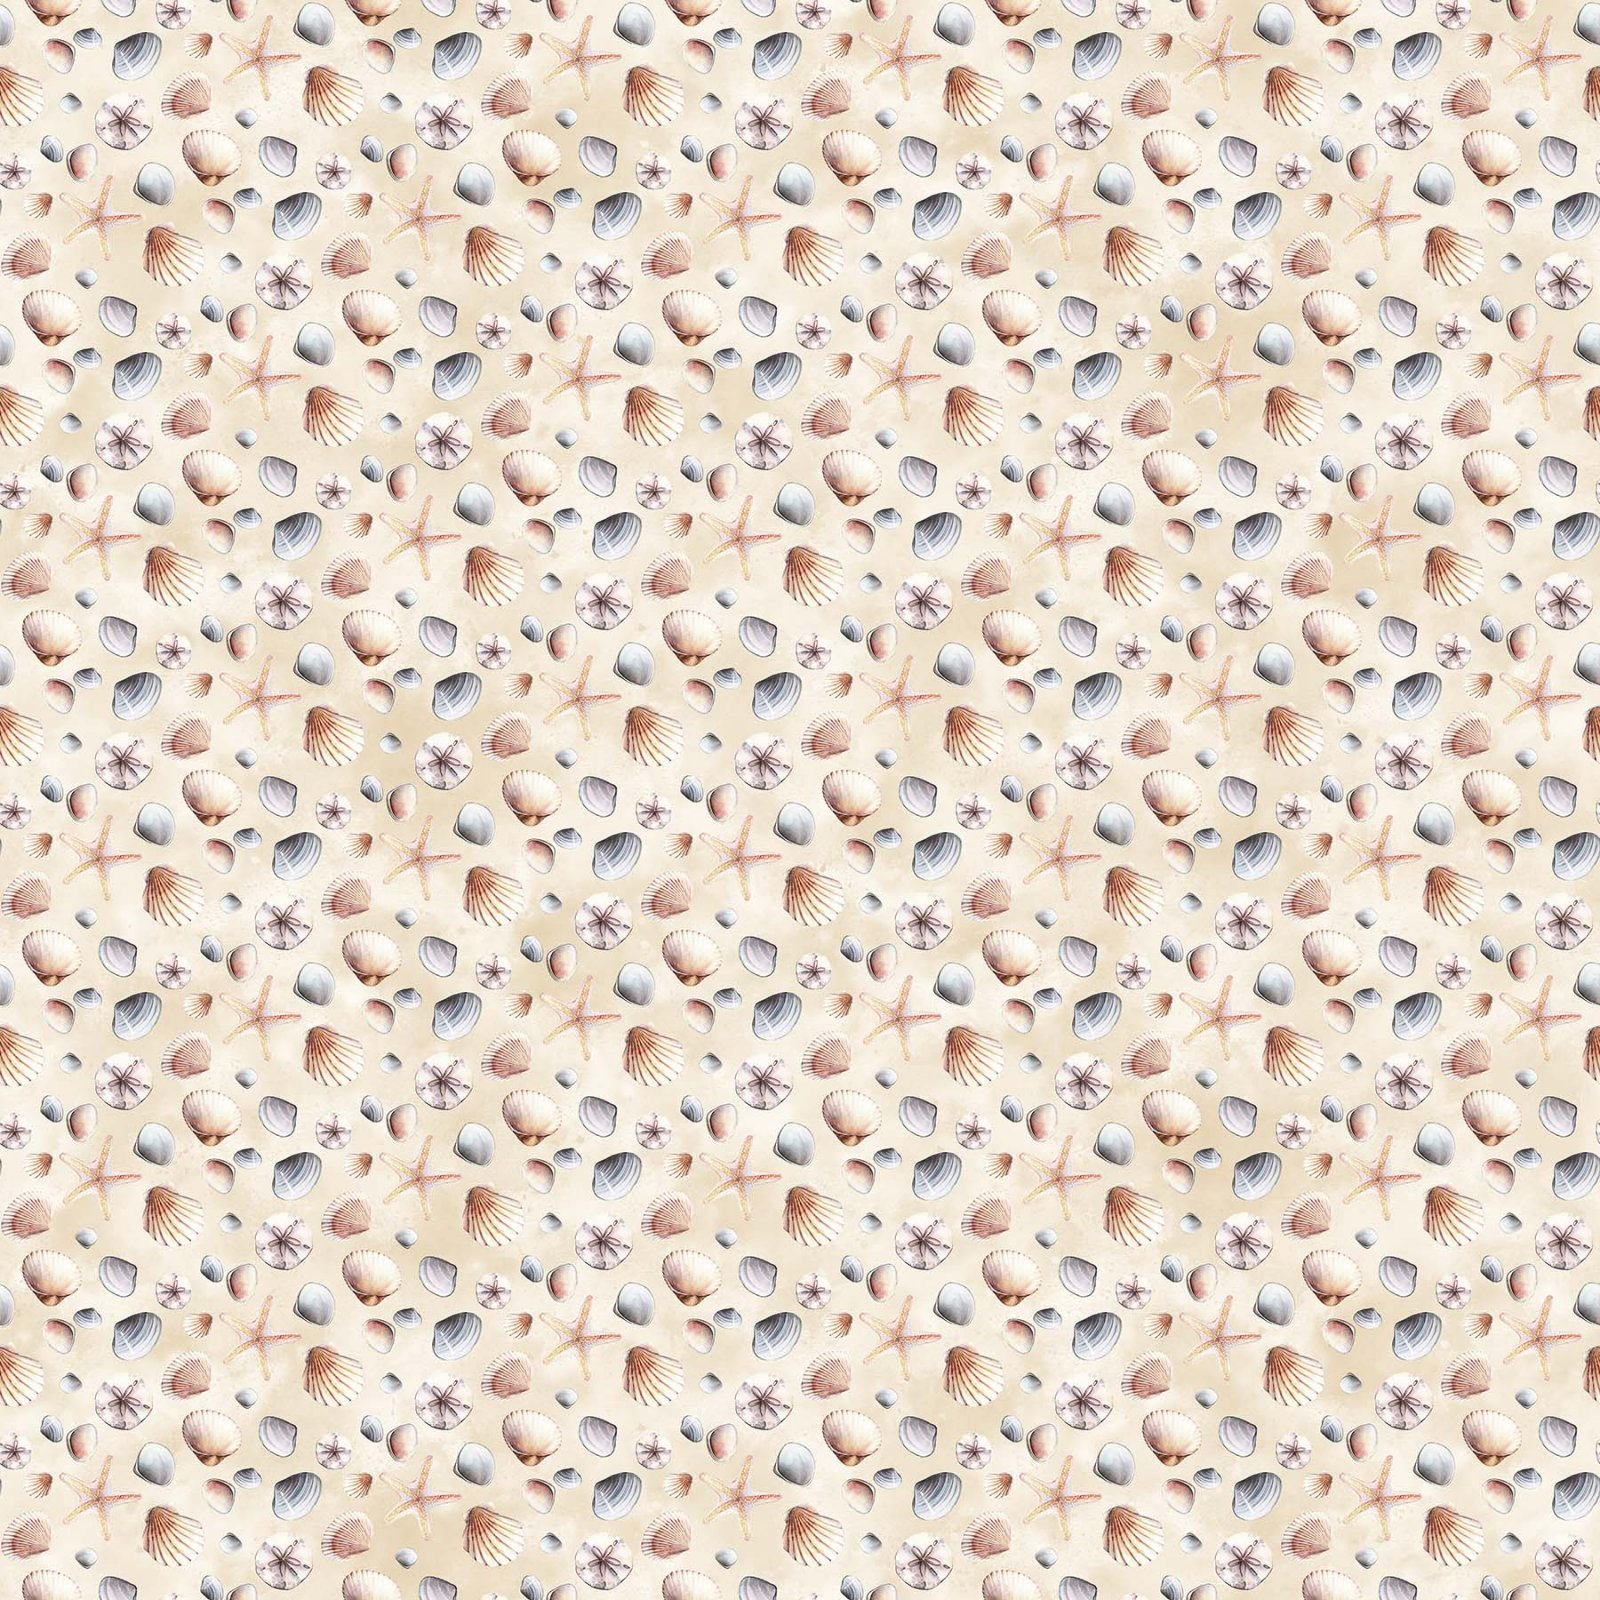 Northcott | Atlantic Shore 22612 11 Seashell Fabric